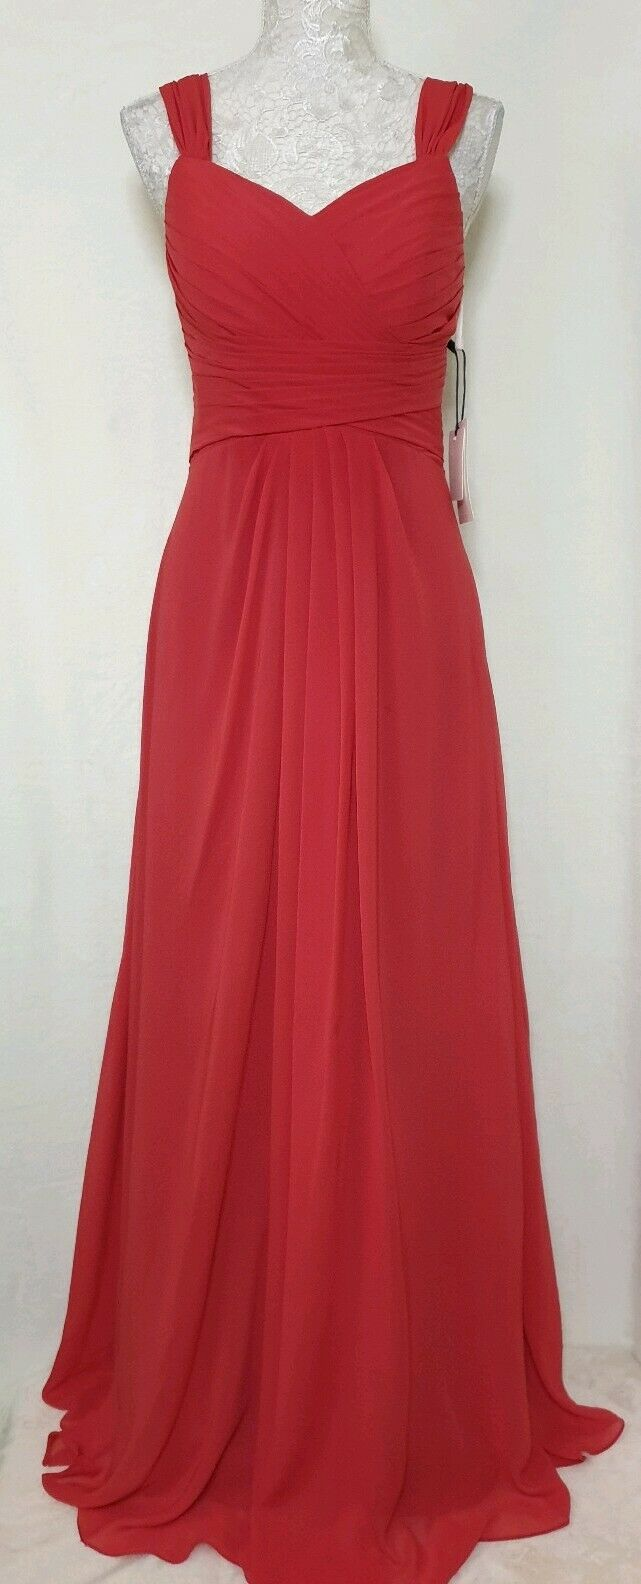 MicBridal Dress   Size S   Pink   Pleated   Long   Prom Bridesmaid Wedding BNWT